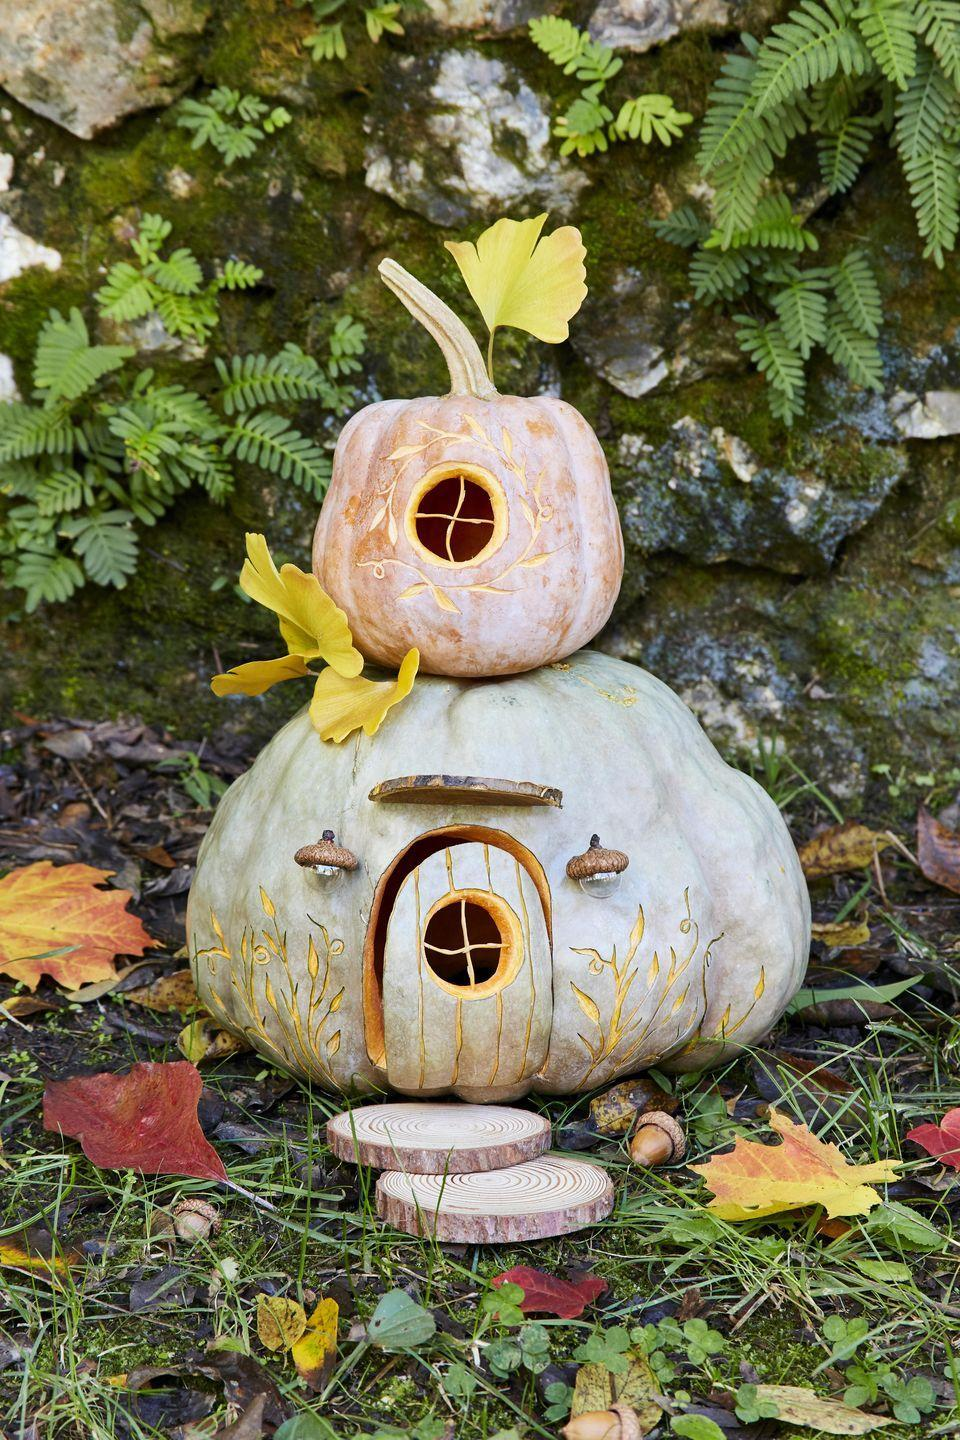 <p>Little hands will love helping create this sweet gourd cottage and keeping an eye out for the gnomes that are surely going to move in.</p><p><strong>To make:</strong> Cut a hole in the bottom of a medium-size blue Hubbard squash; scoop out the pulp and seeds. Cut out the door and circular door window. Etch lines in the door with a linoleum carving tool, and insert toothpicks (shortened if necessary) to create window muttons. Lightly draw flower design on either side of door with a pencil, and use linoleum carving tool to etch out. Insert the door into the opening and hold in place with toothpicks. Hot-glue mini glass balls into acorn caps to create lights; attach to pumpkin with hot-glue. Cut half to two-thirds off of a wood round; attach to pumpkin, above the door to create an awning.</p><p>Cut a hole in the bottom of a small brown or green acorn squash; scoop out the pulp and seeds. Cut a circular window, and insert toothpicks (shortened if necessary) to create window muttons. Lightly draw flower design around window with a pencil, and use linoleum carving tool to etch out. Stack pumpkins and add wood round steps and ginkgo leaves. </p>